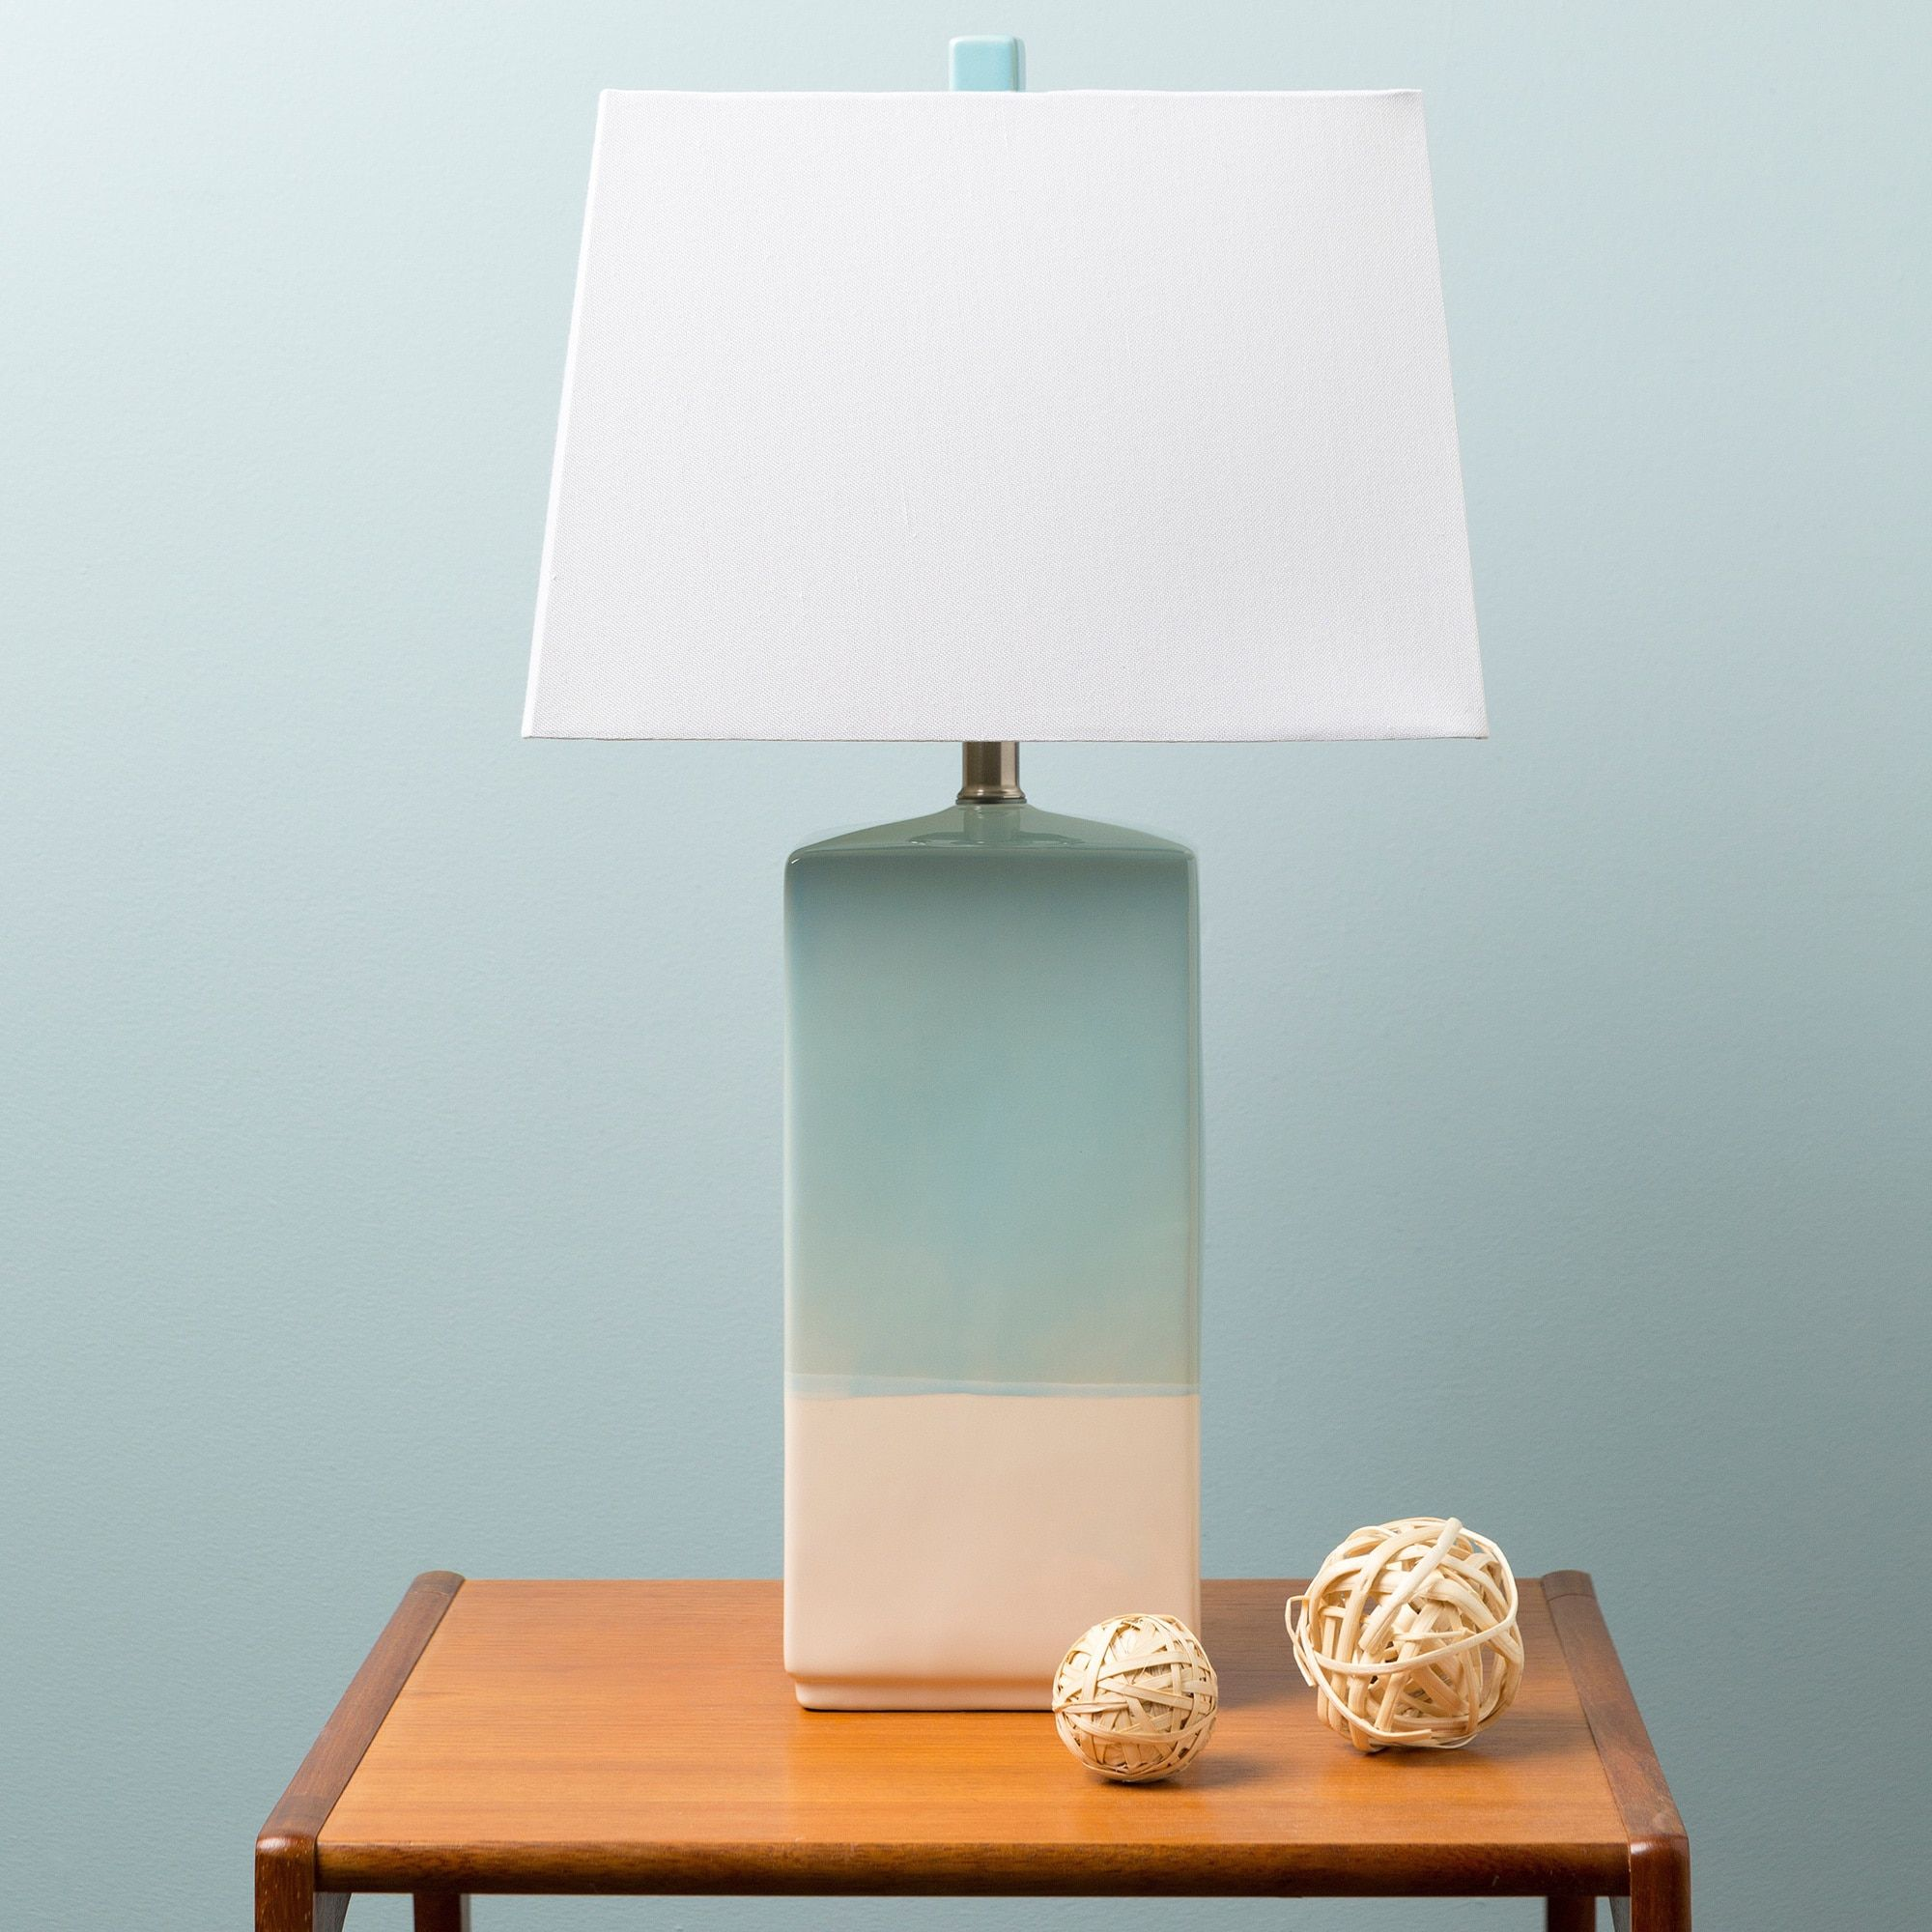 White table lamps brighten your home with beautiful table lamps white table lamps brighten your home with beautiful table lamps free shipping on orders geotapseo Choice Image